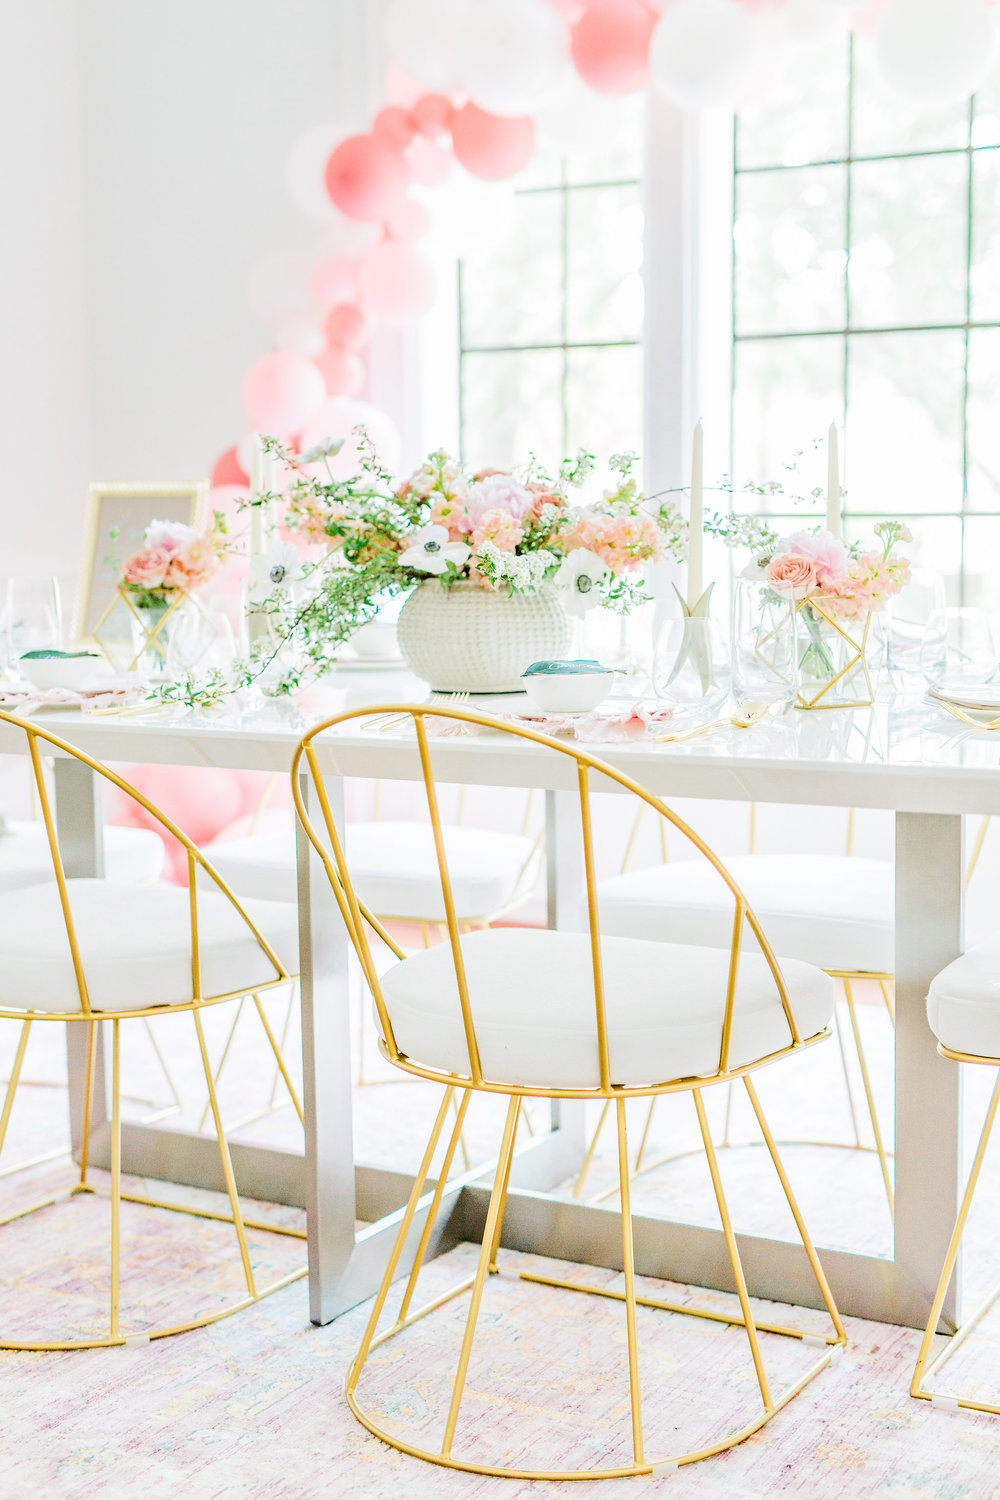 Pink and gold bridal shower ideas LumiSource Canary Dining Chairs in White (Set of 2) LumiSource Canary Dining Chairs in White (Set of 2)